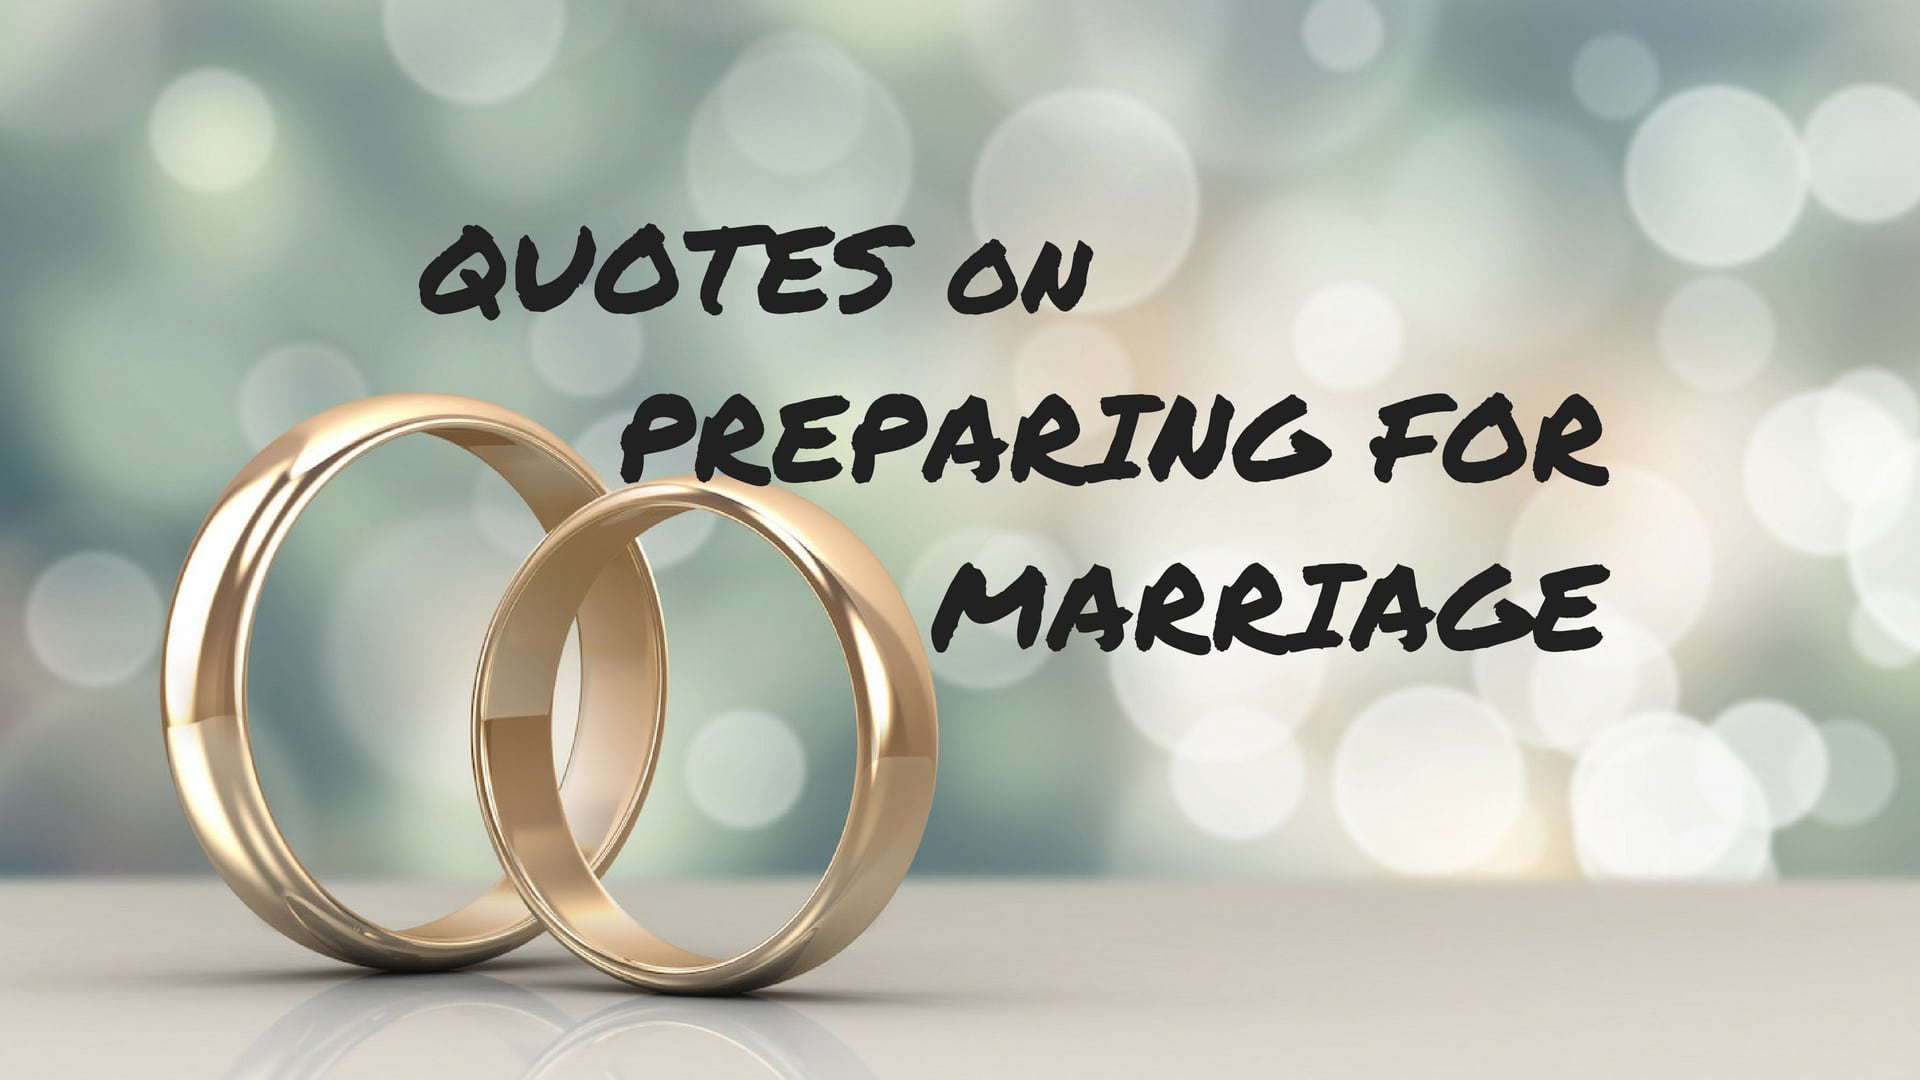 QUOTES on PREPARING for MARRIAGE - Adobe Stock - Canva